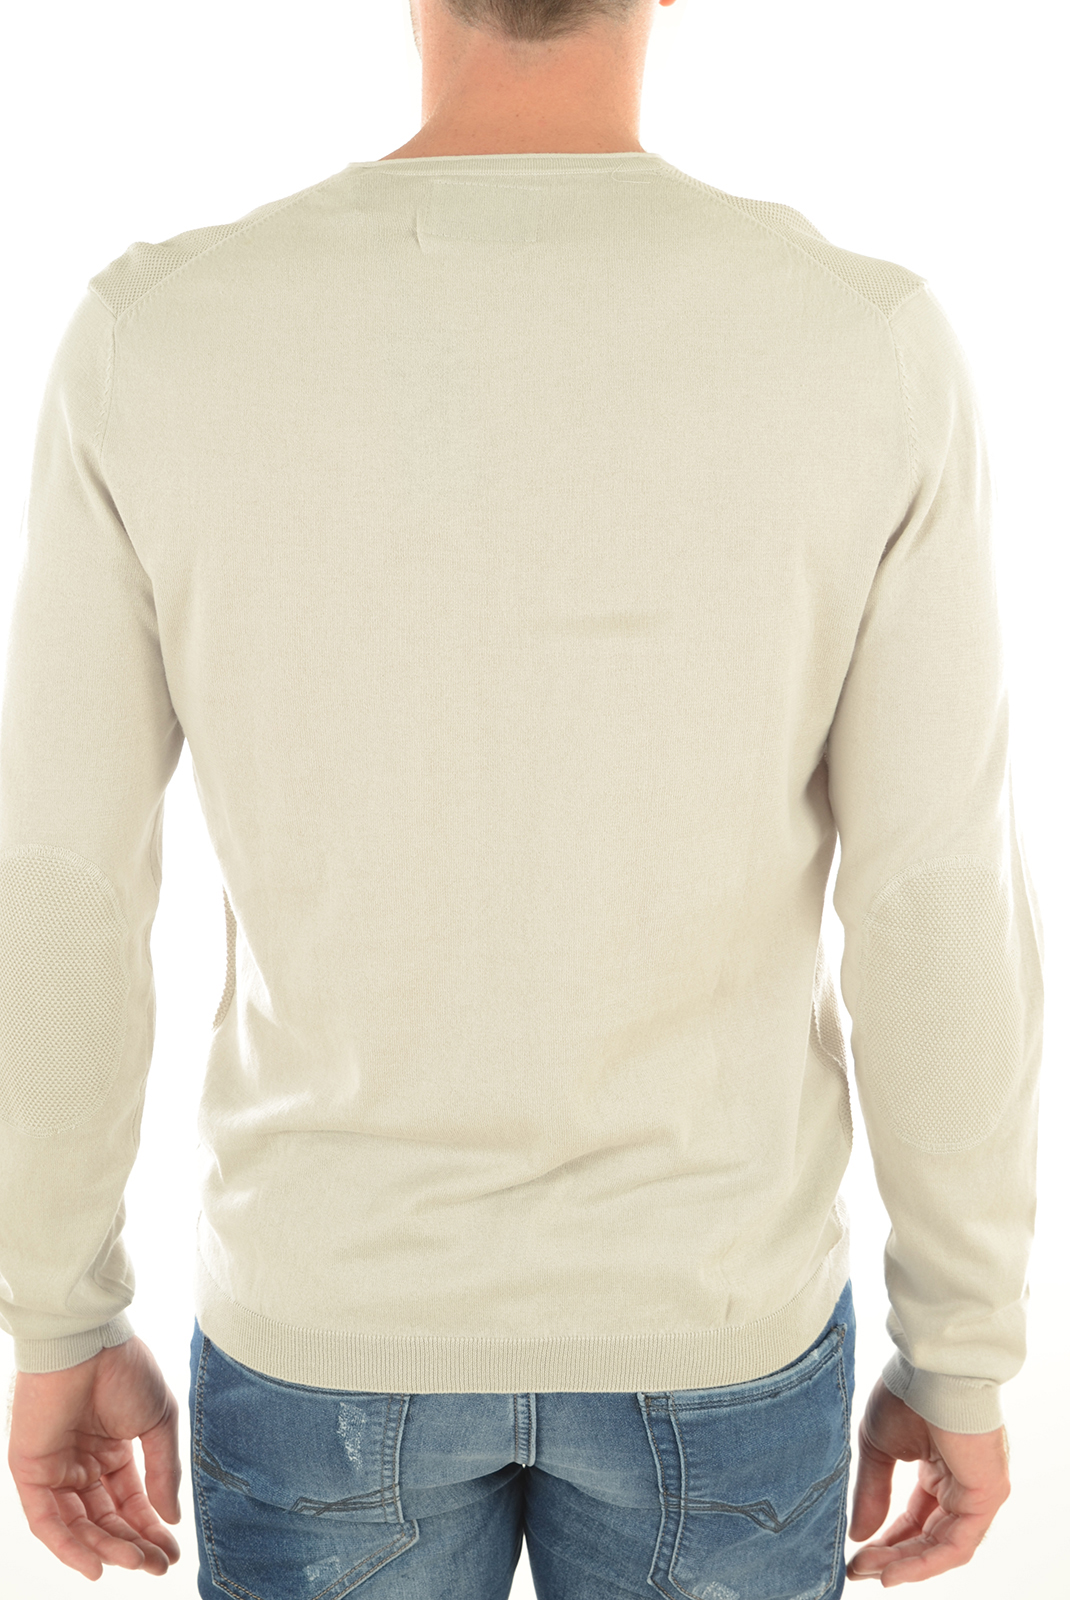 GUESS JEANS PULL UNI COTON FINES MAILLES M61R19 BEIGE COL V HOMME